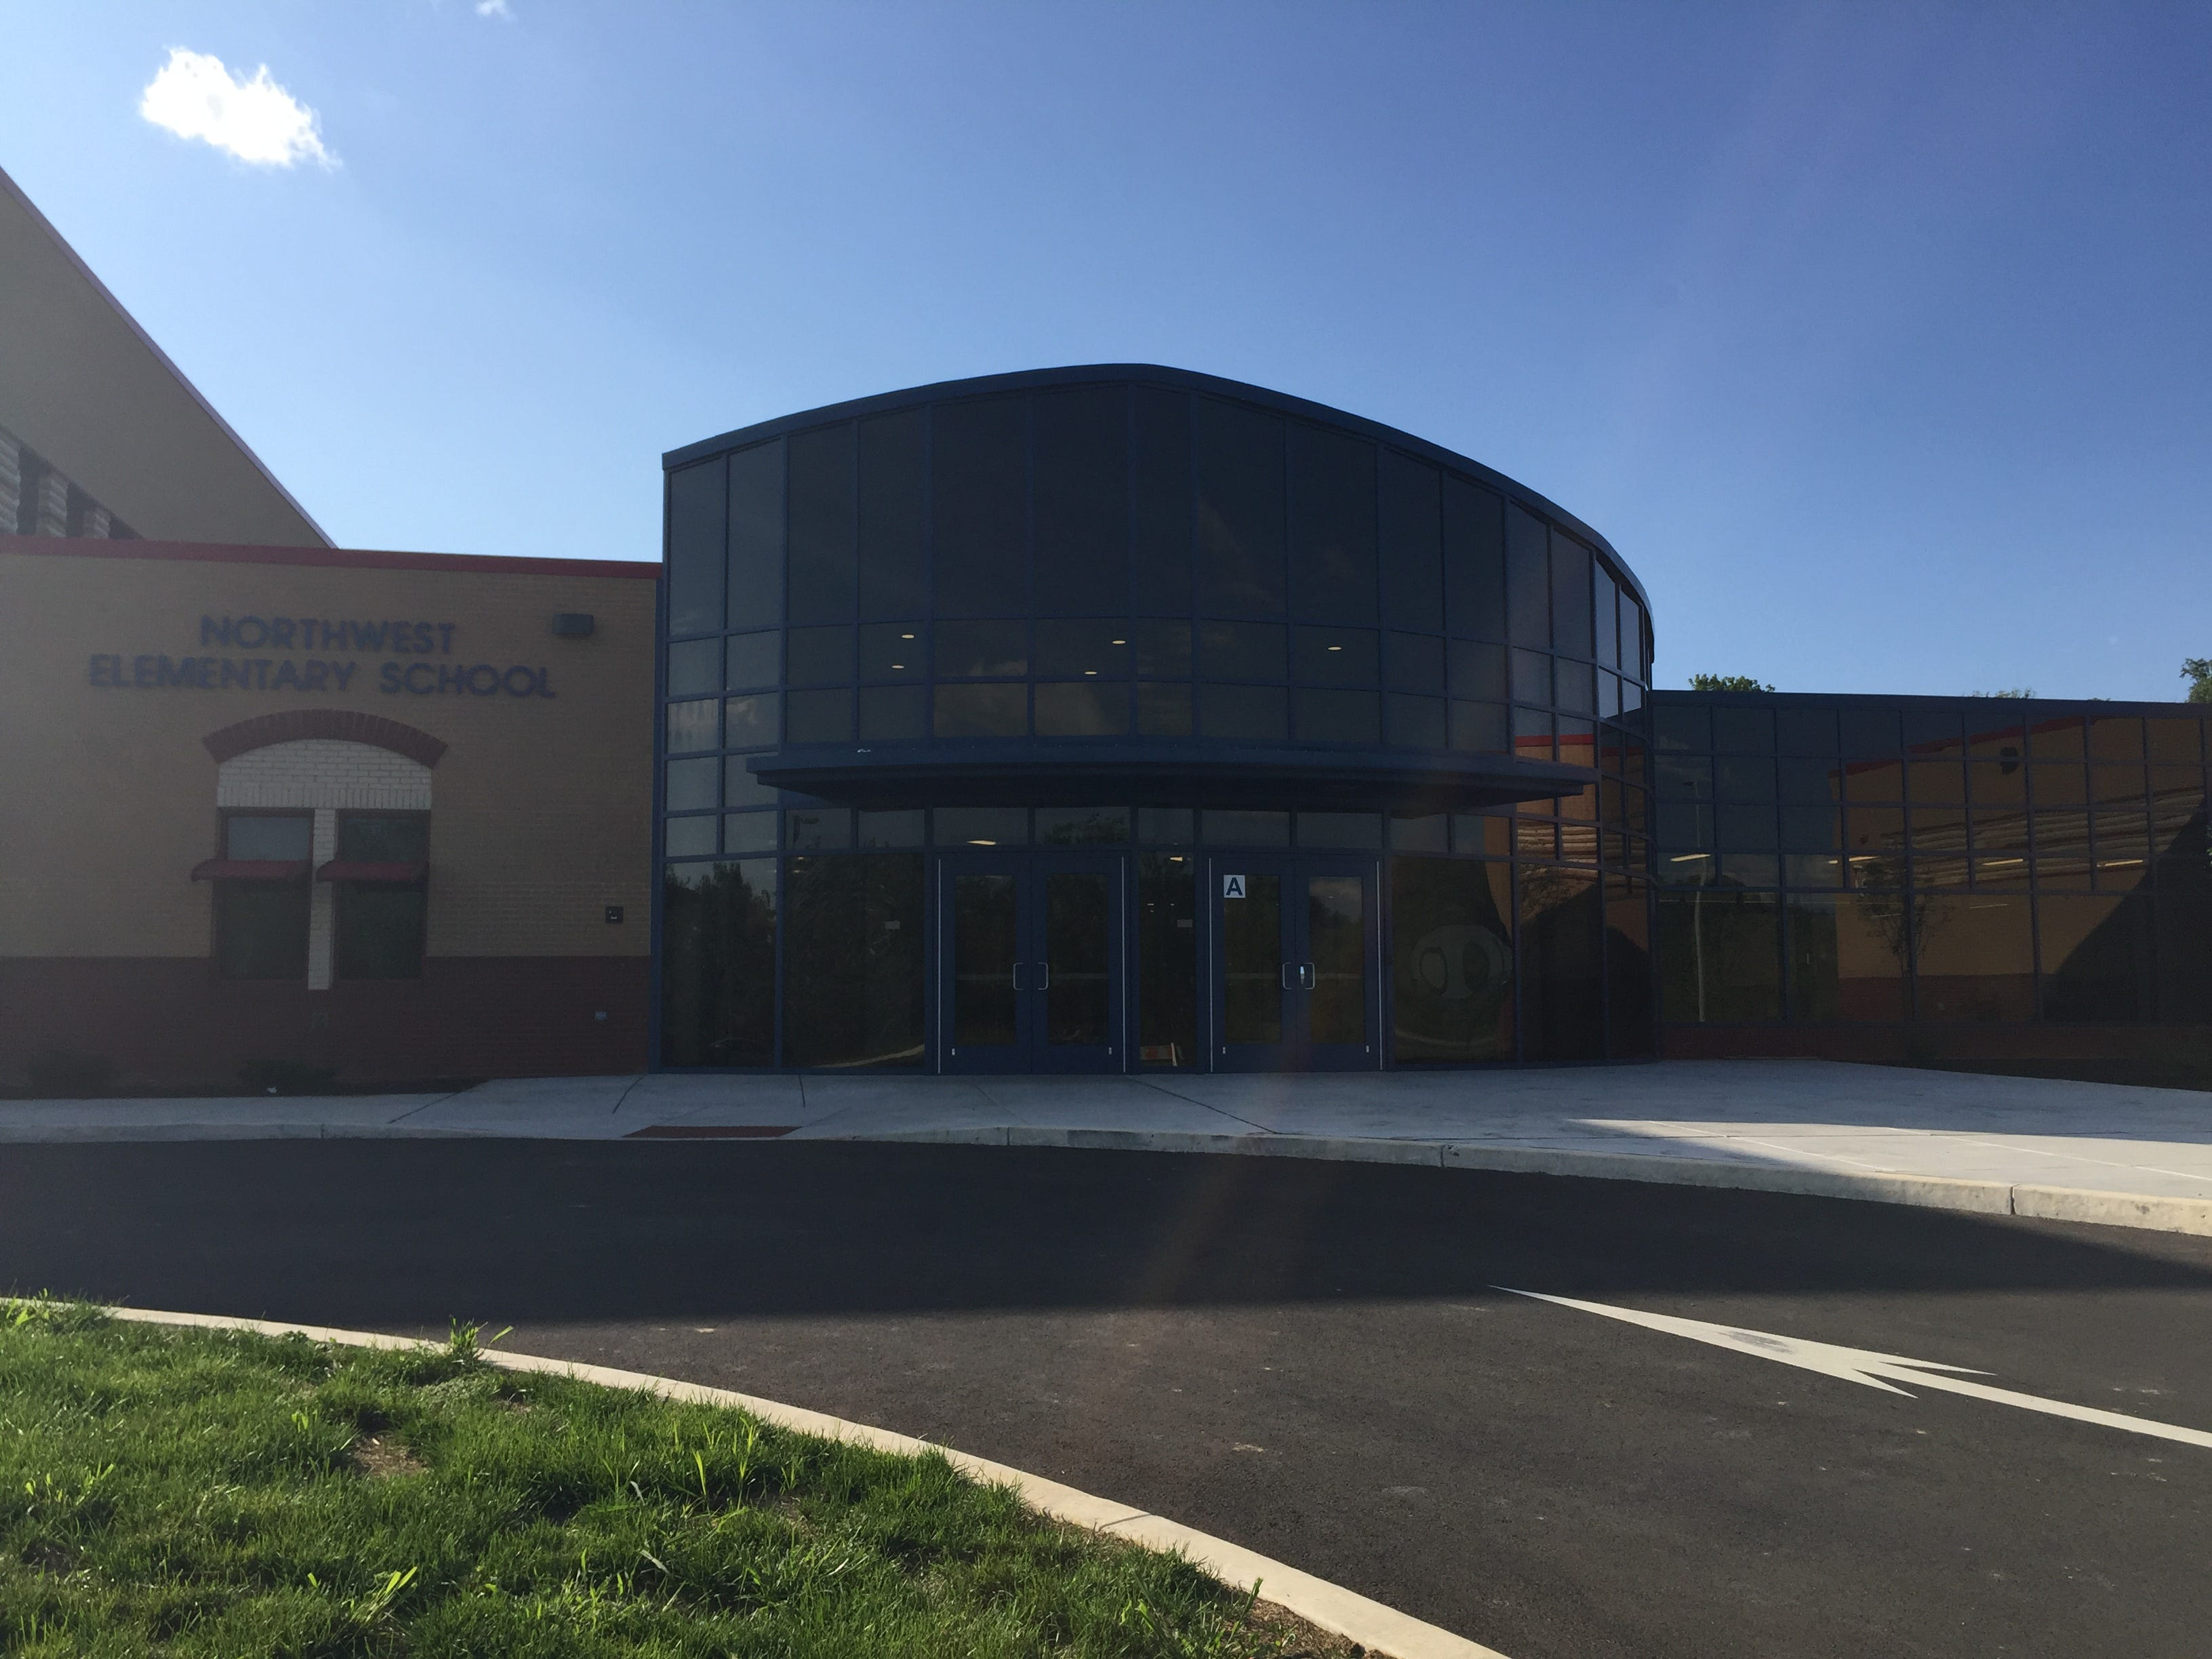 Entrance of Lebanon School District's new Northwest Elementary School Aug. 23, 2018. The building is located at 1315 Old Forge Road, Lebanon.